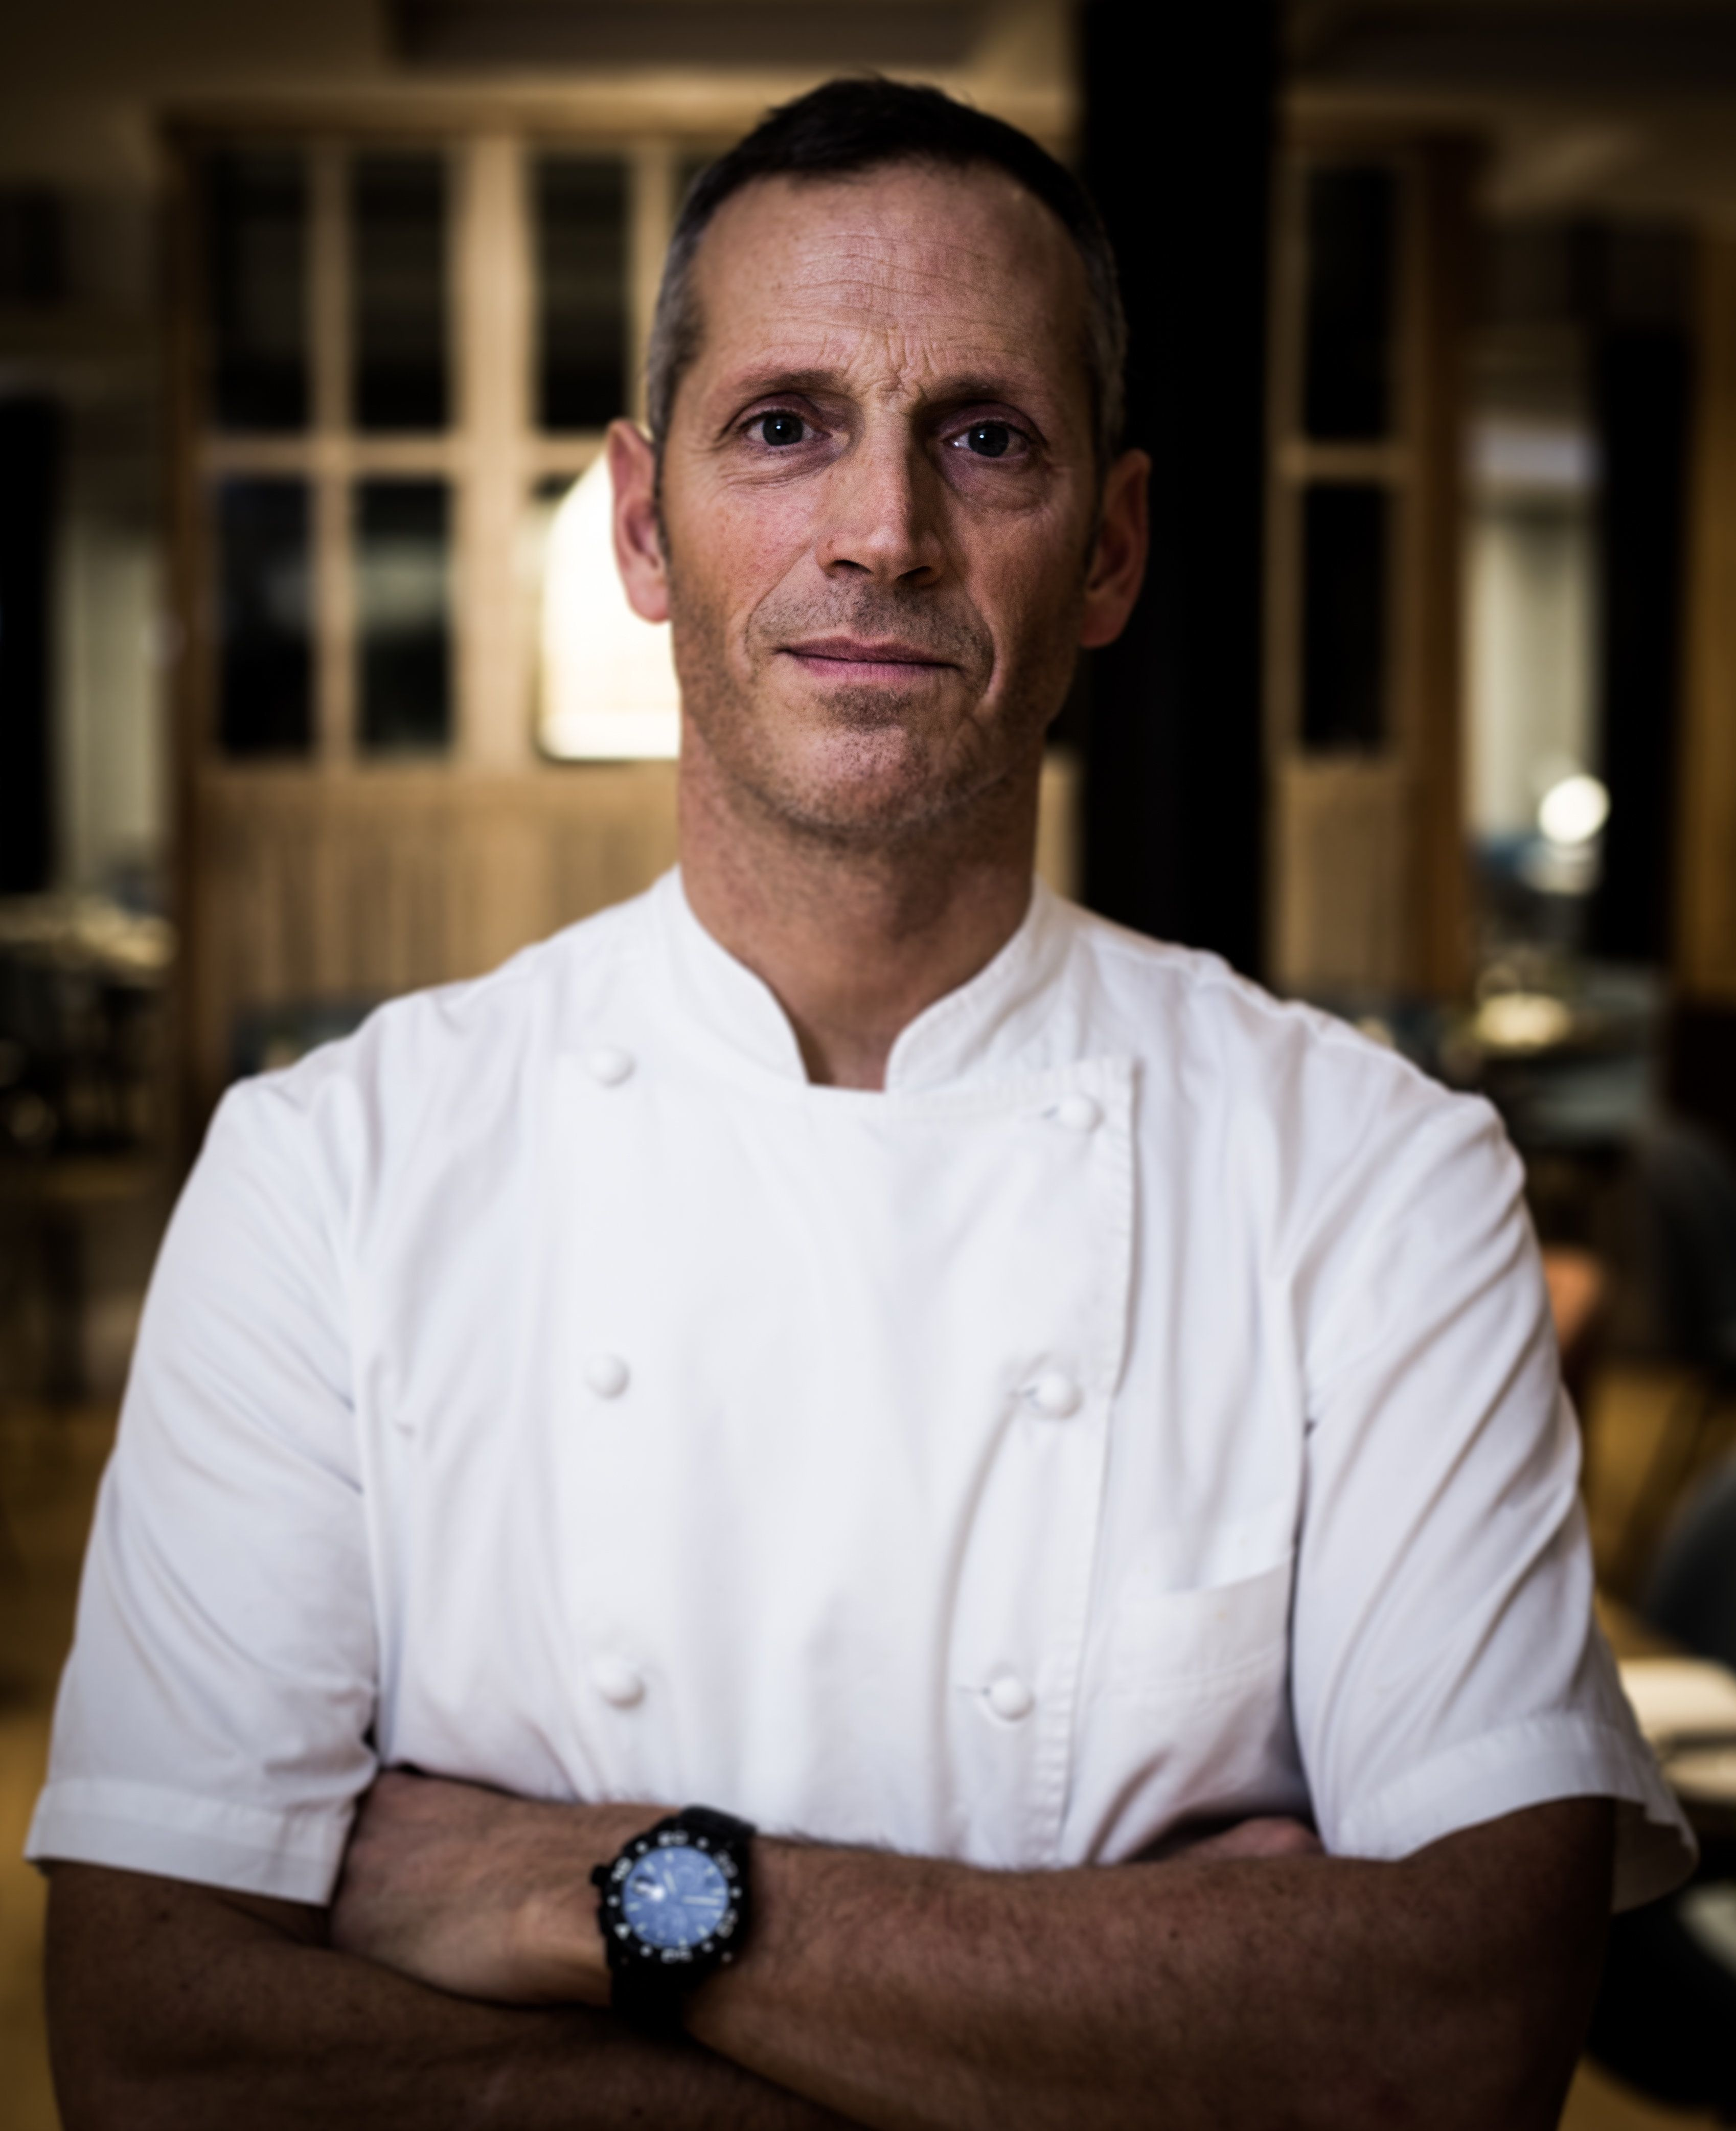 Why Phil HowardBelieves Fellow Chefs Have A'Dishonest Relationship With Food'